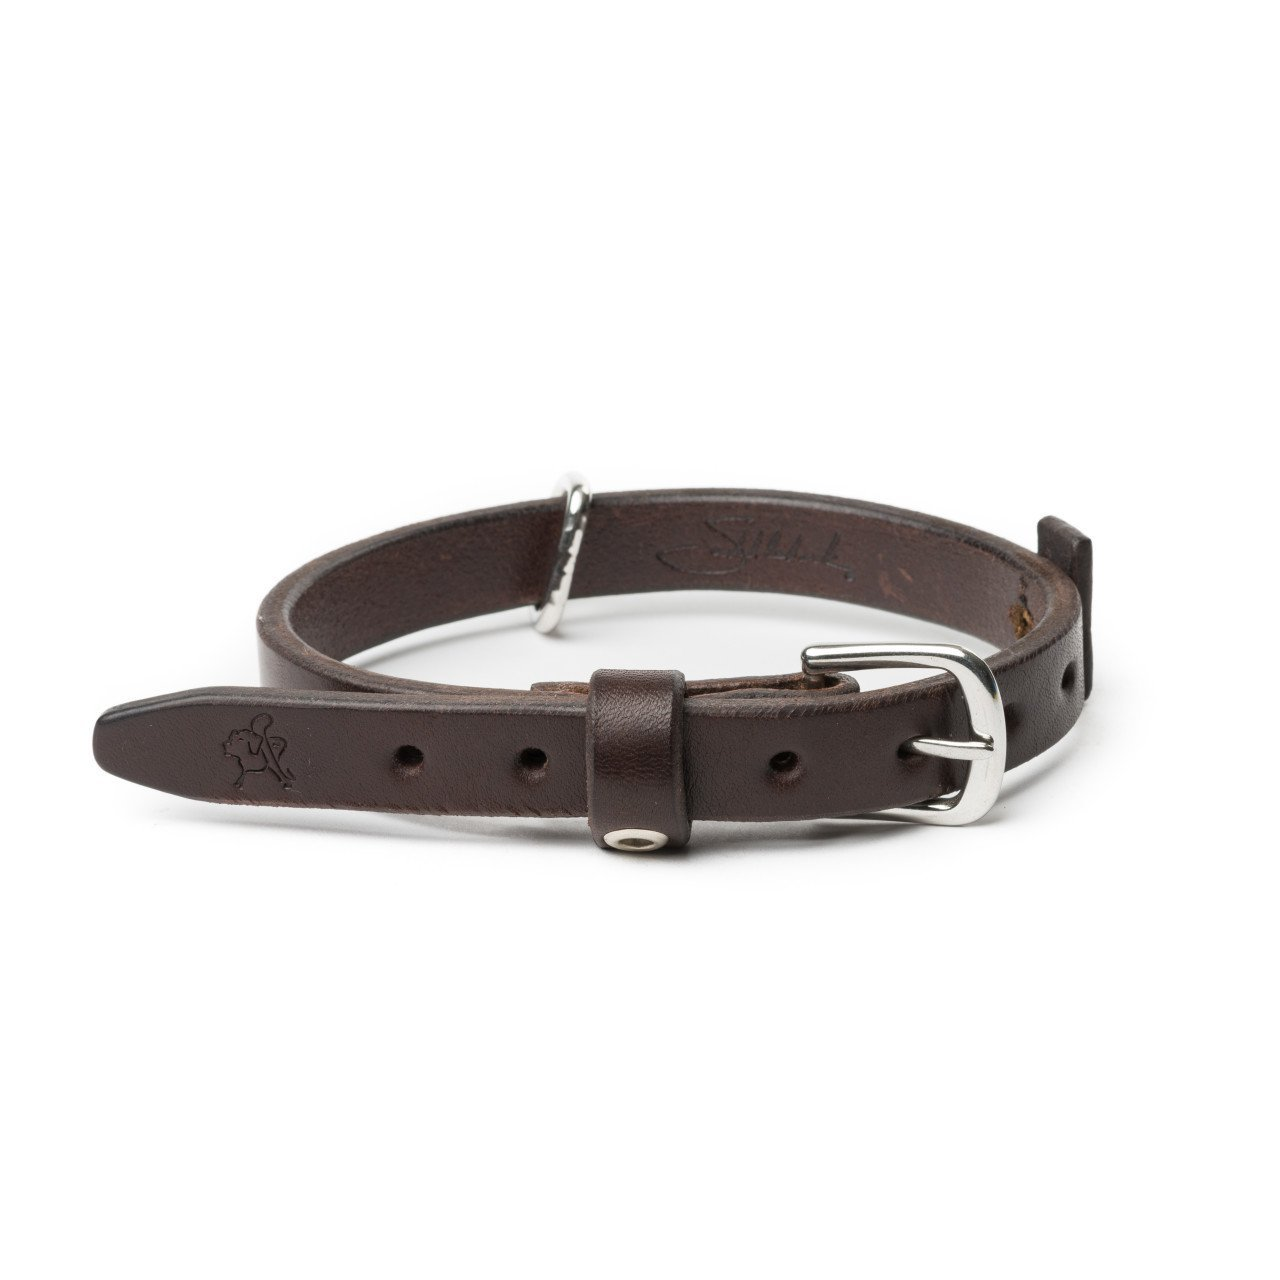 Dark Coffee Small 0.75\ Dark Coffee Small 0.75\ Saddleback Leather Co. Tough Full Grain Leather Dog Collar for Neck and Walking Includes 100 Year Warranty